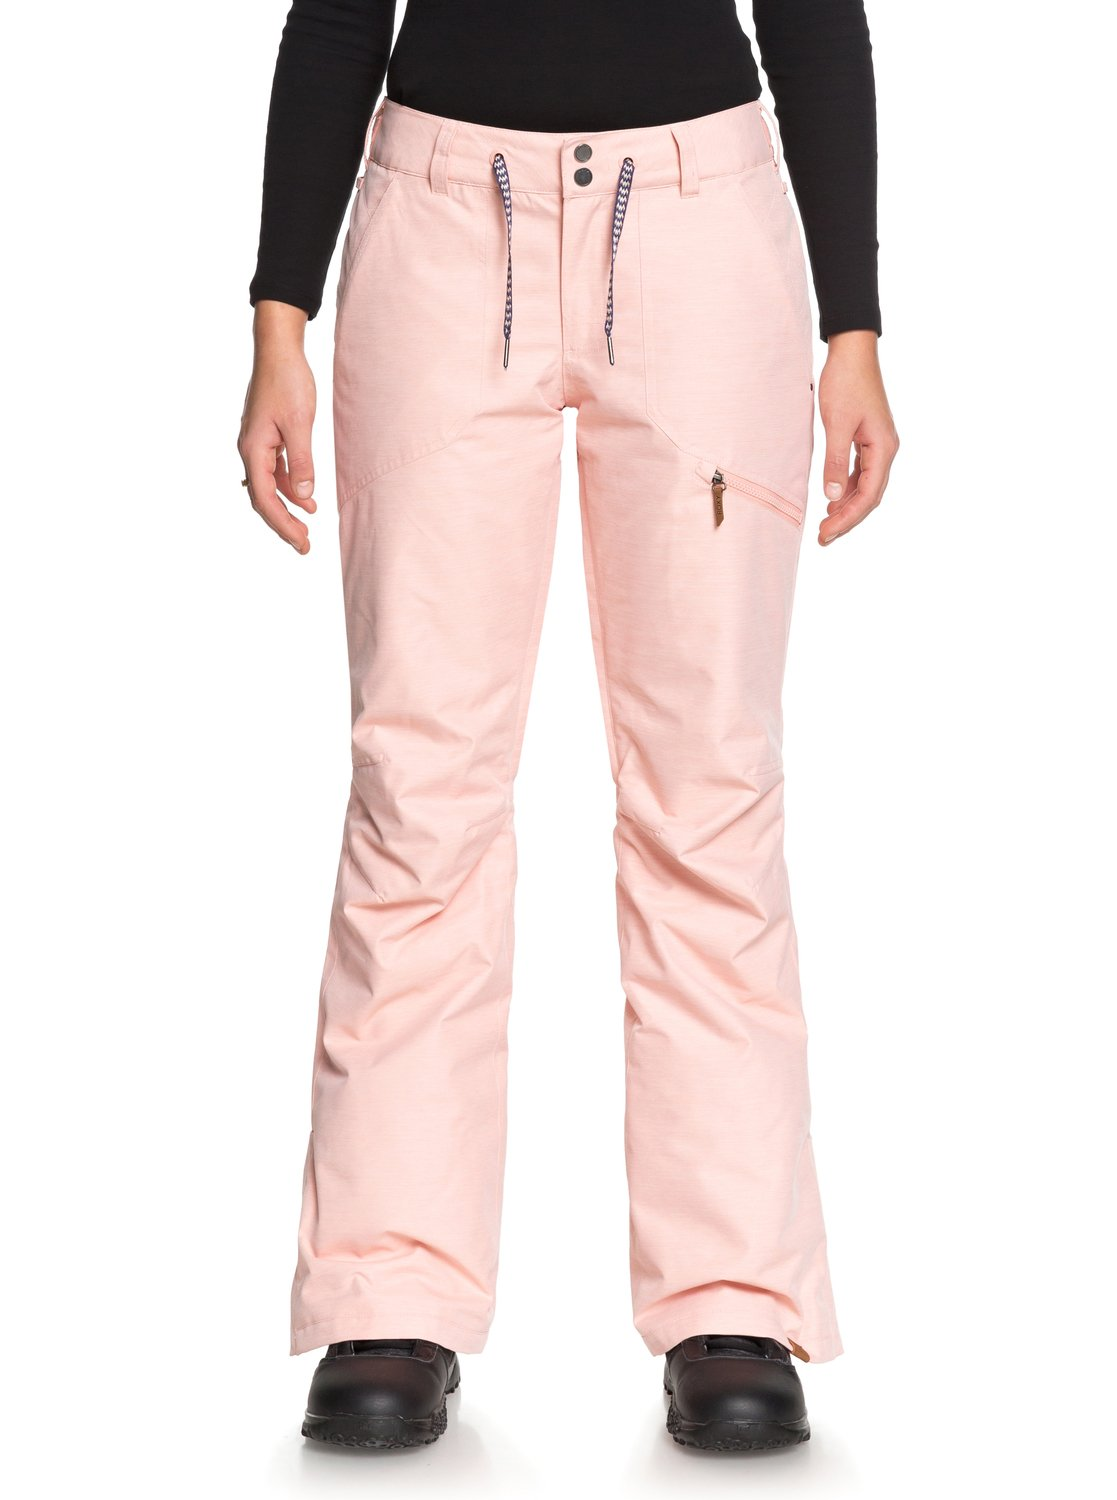 Roxy Snow Pants